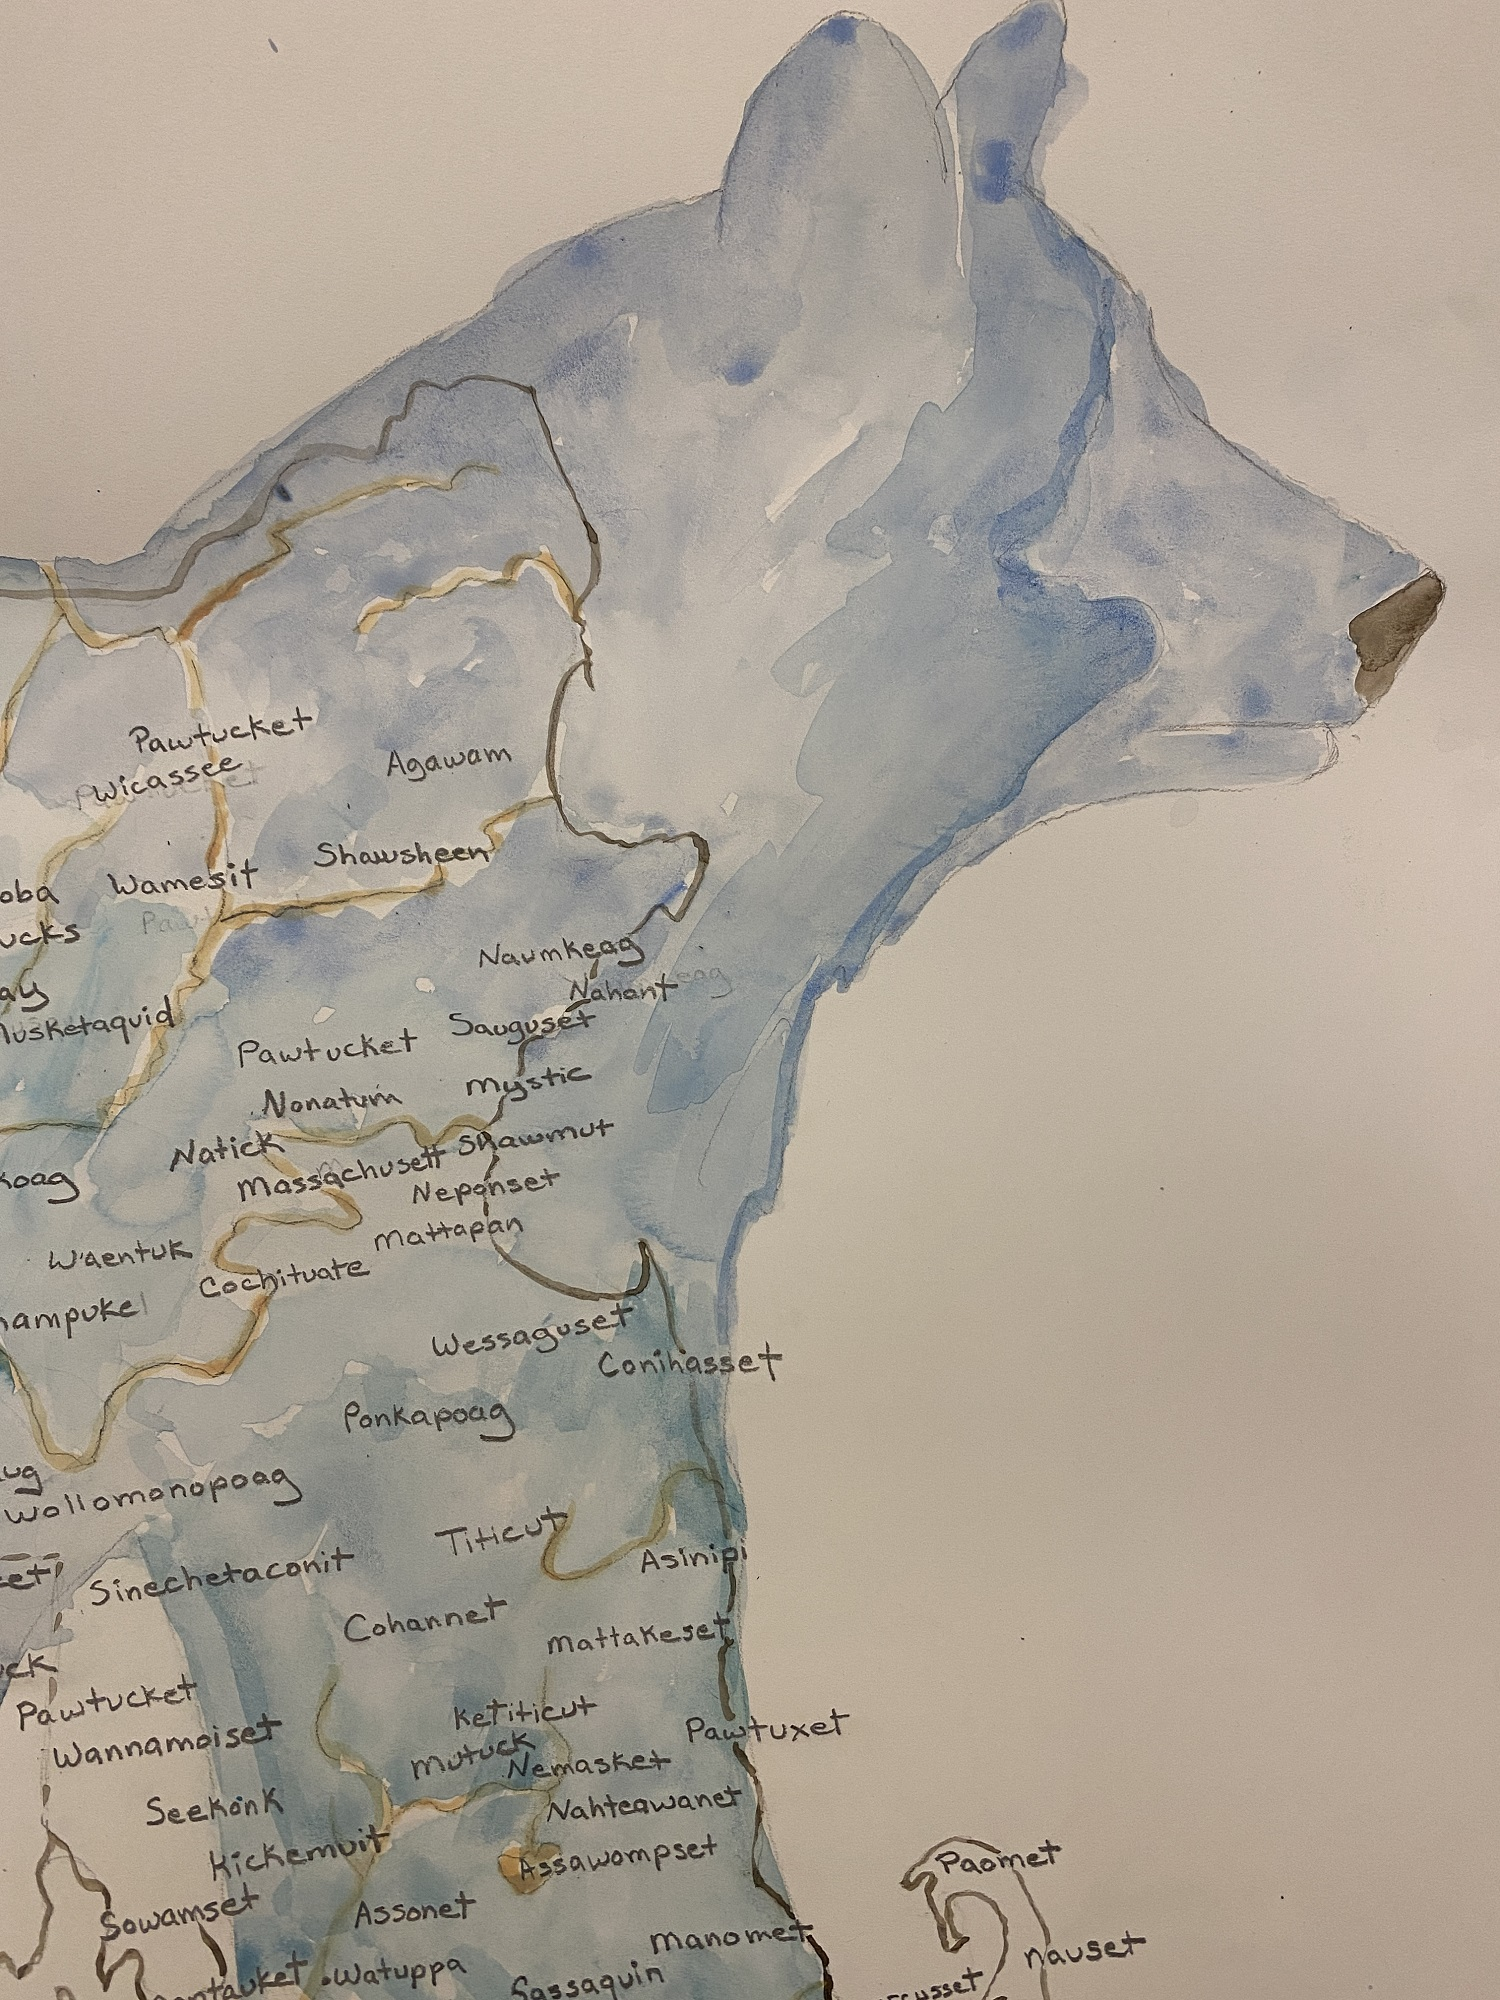 a watercolor map in the shape of a bear